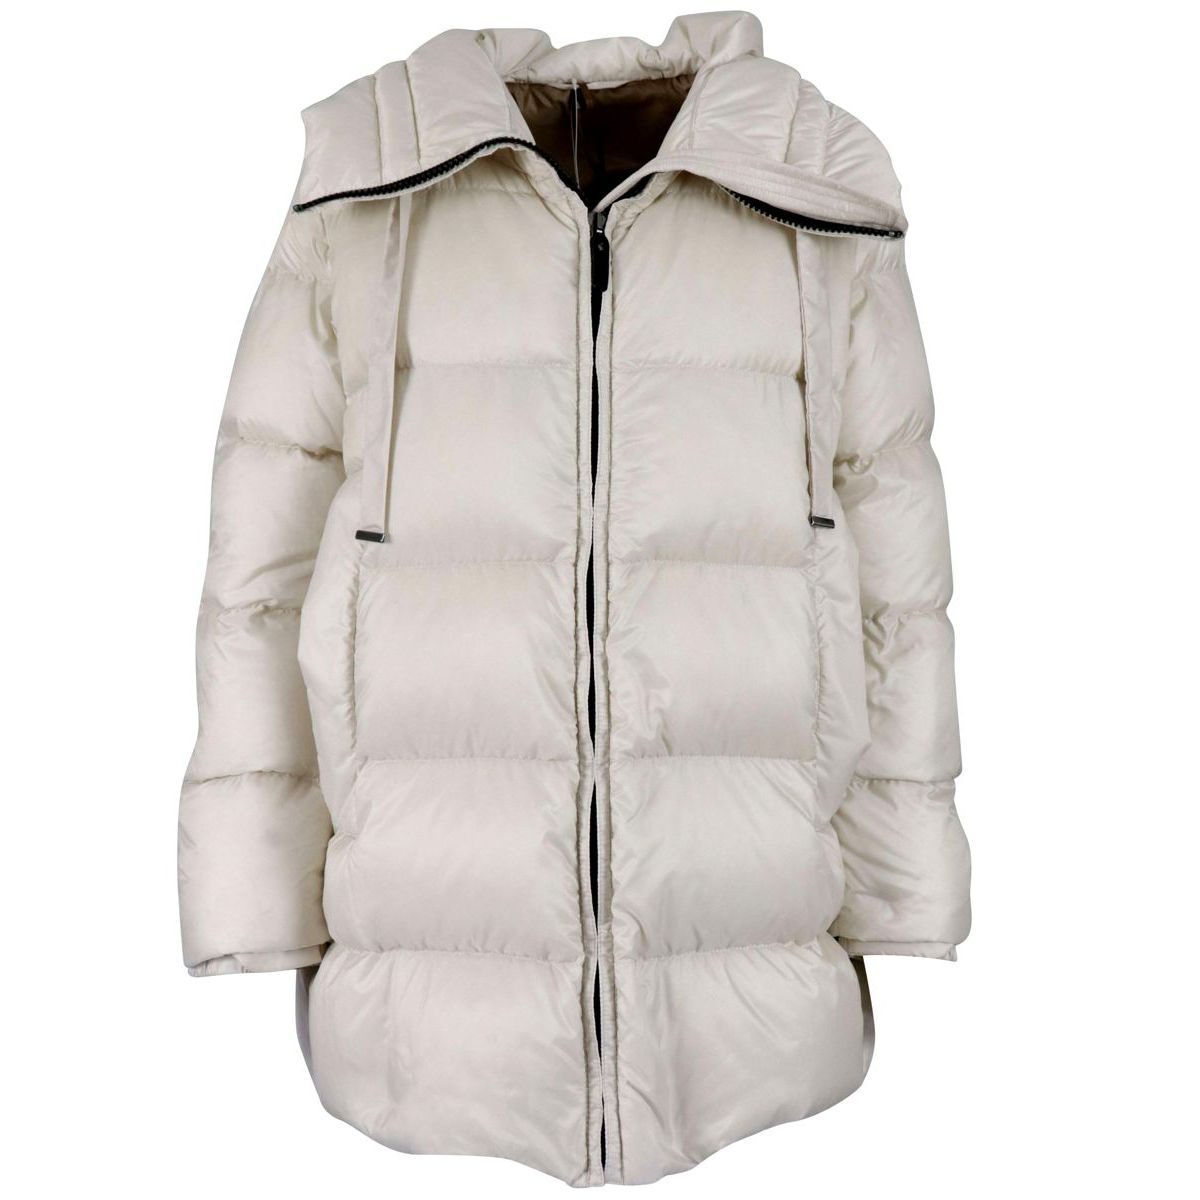 Seicar down jacket with hood Cream MAX MARA THE CUBE